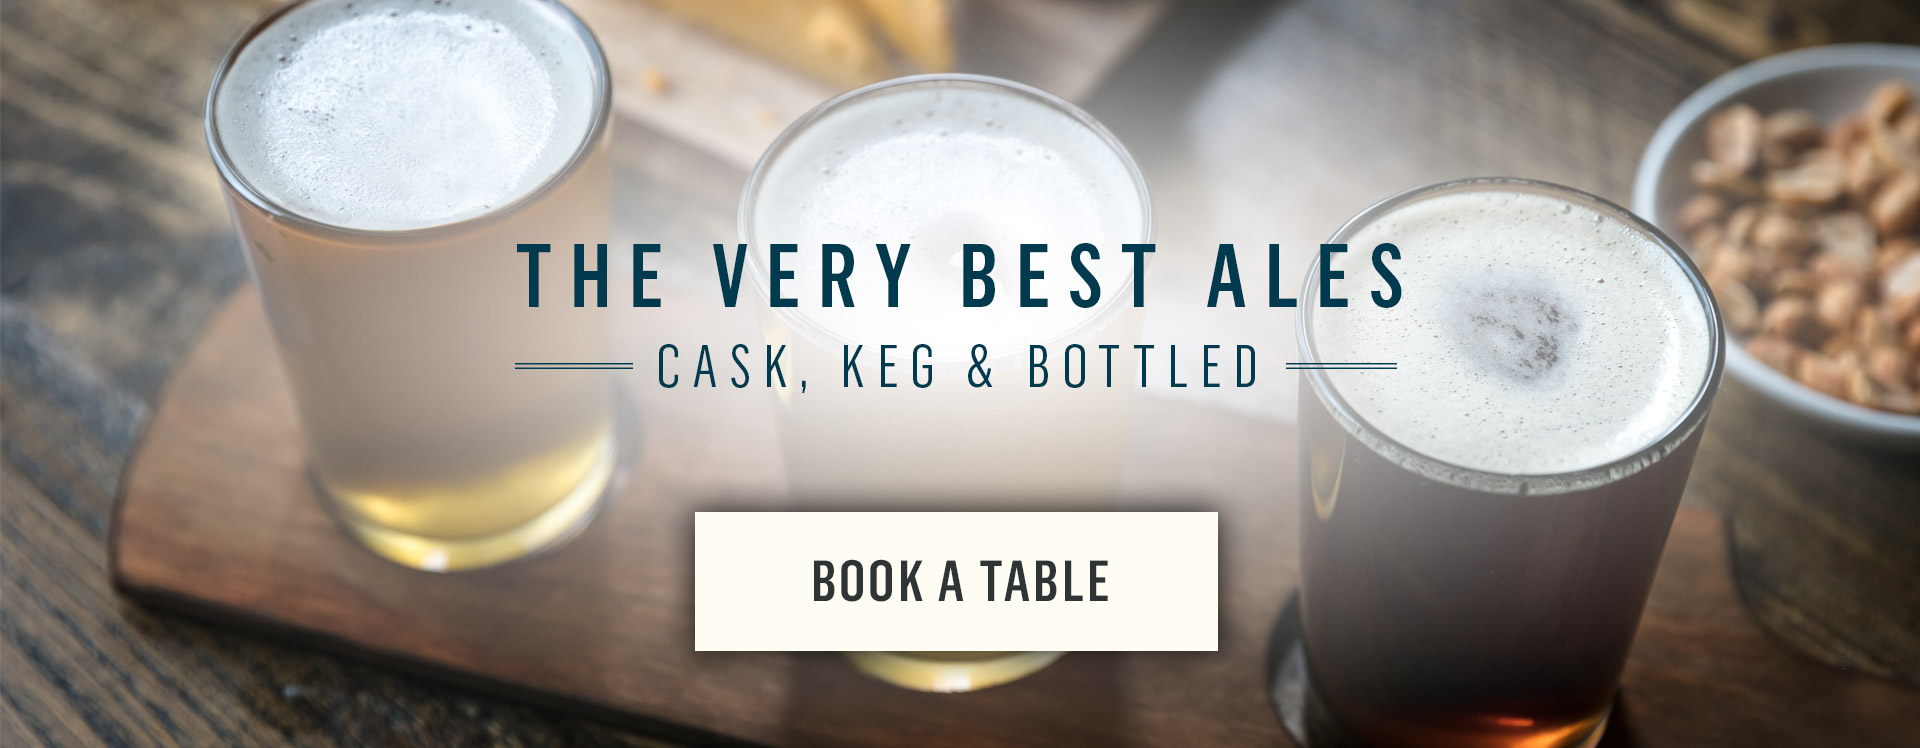 The very best ales - Book a table